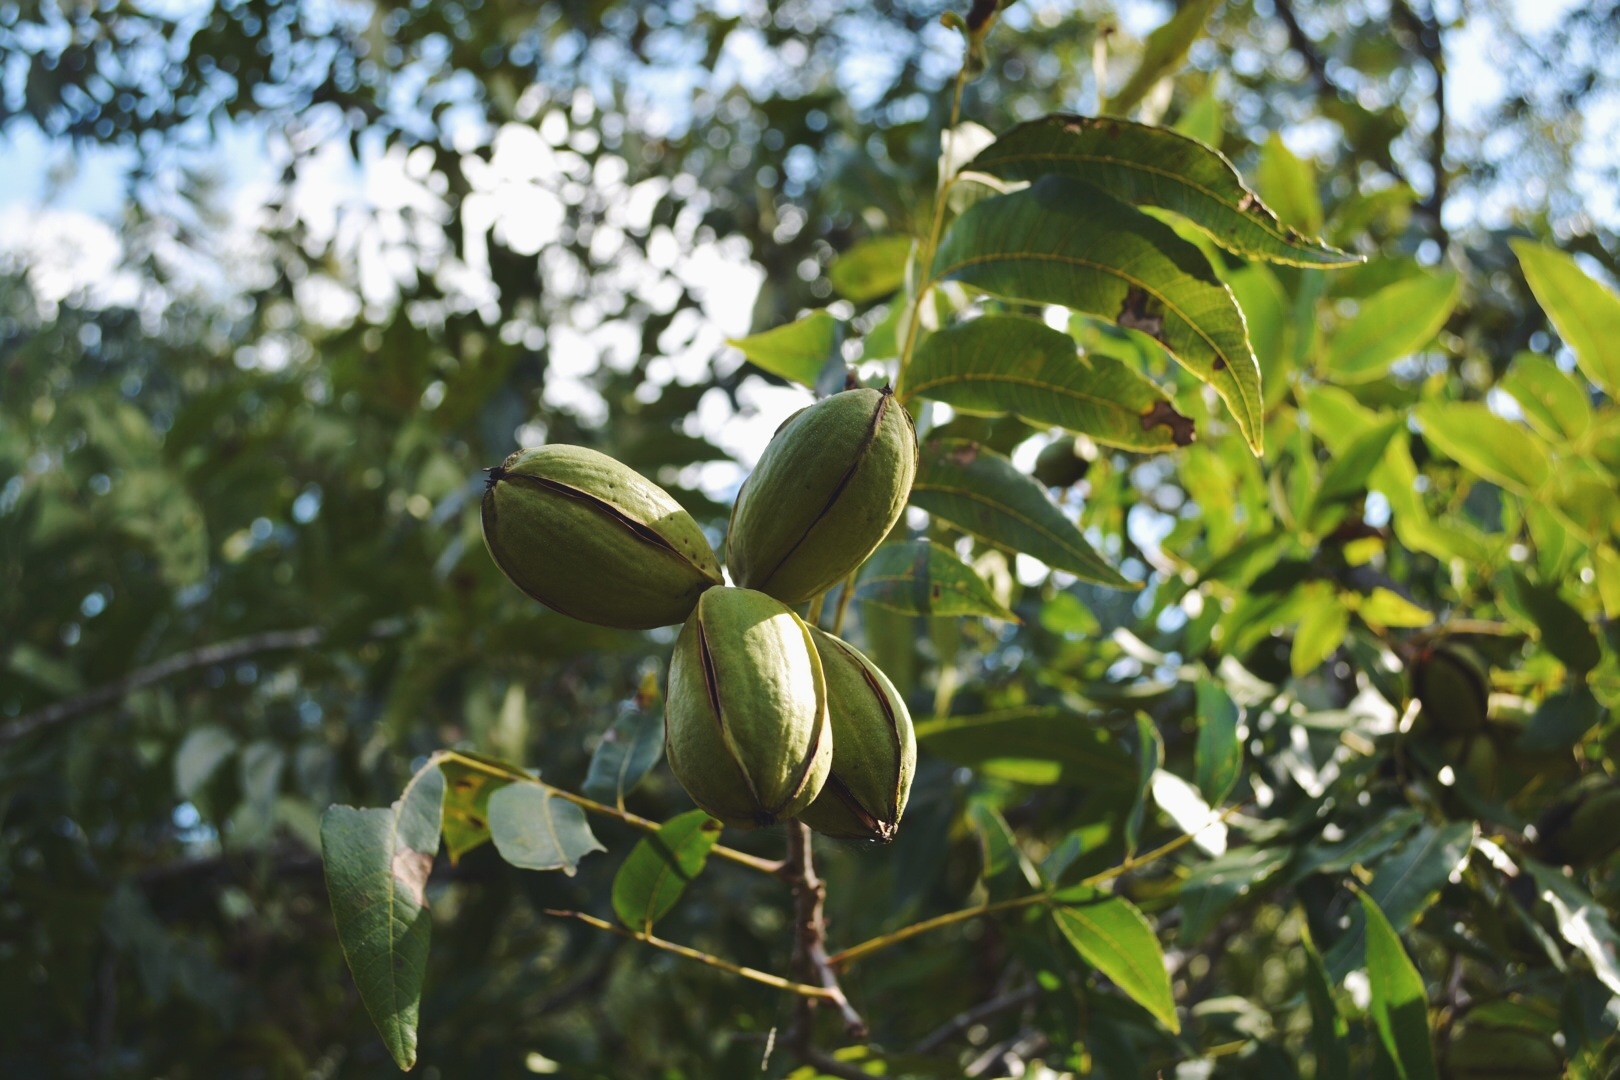 Unripe Pecans in the Husk